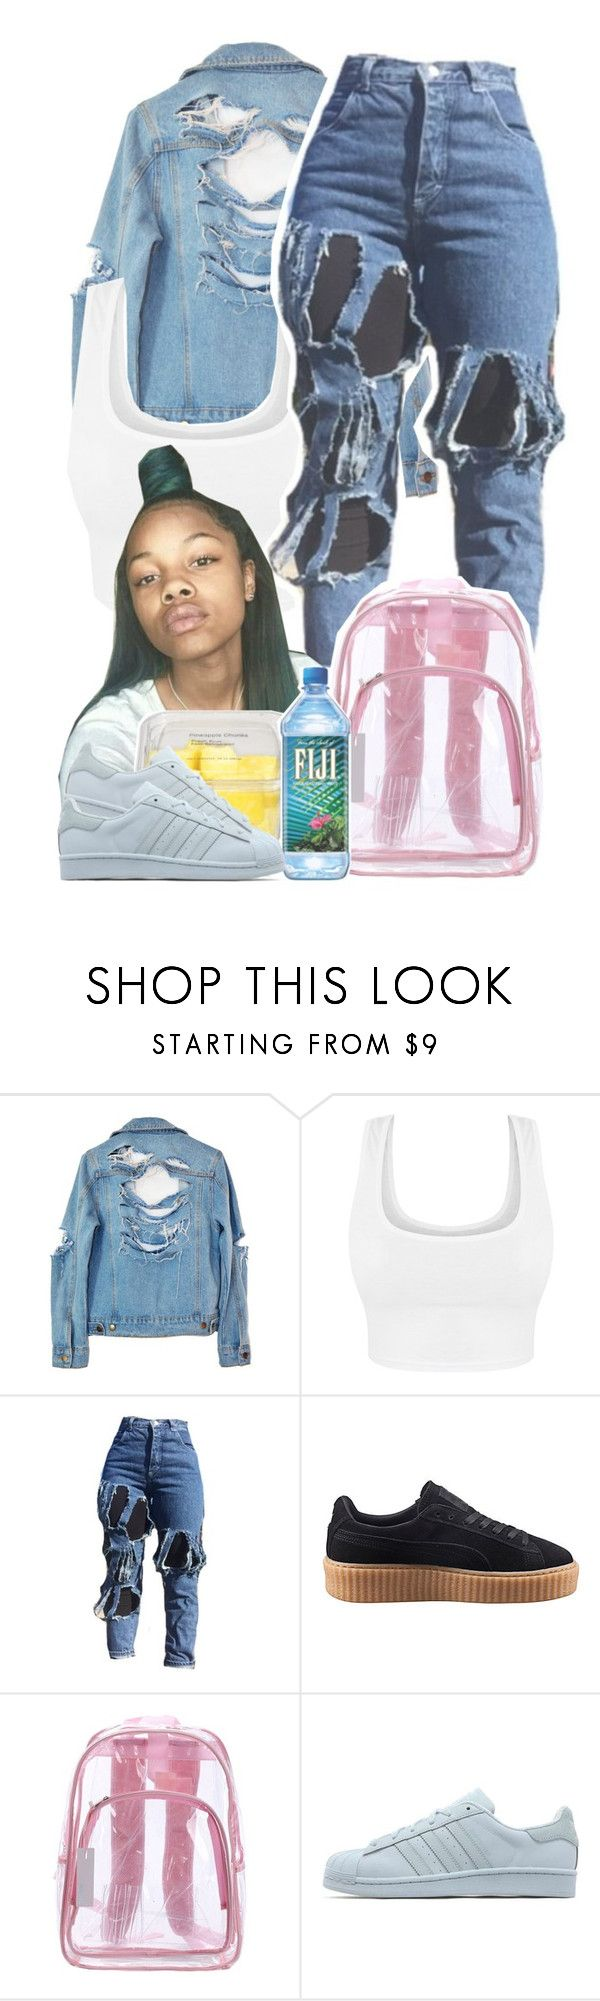 """F I G I 💦"" by s0-childish ❤ liked on Polyvore featuring High Heels Suicide, Puma and adidas Originals"